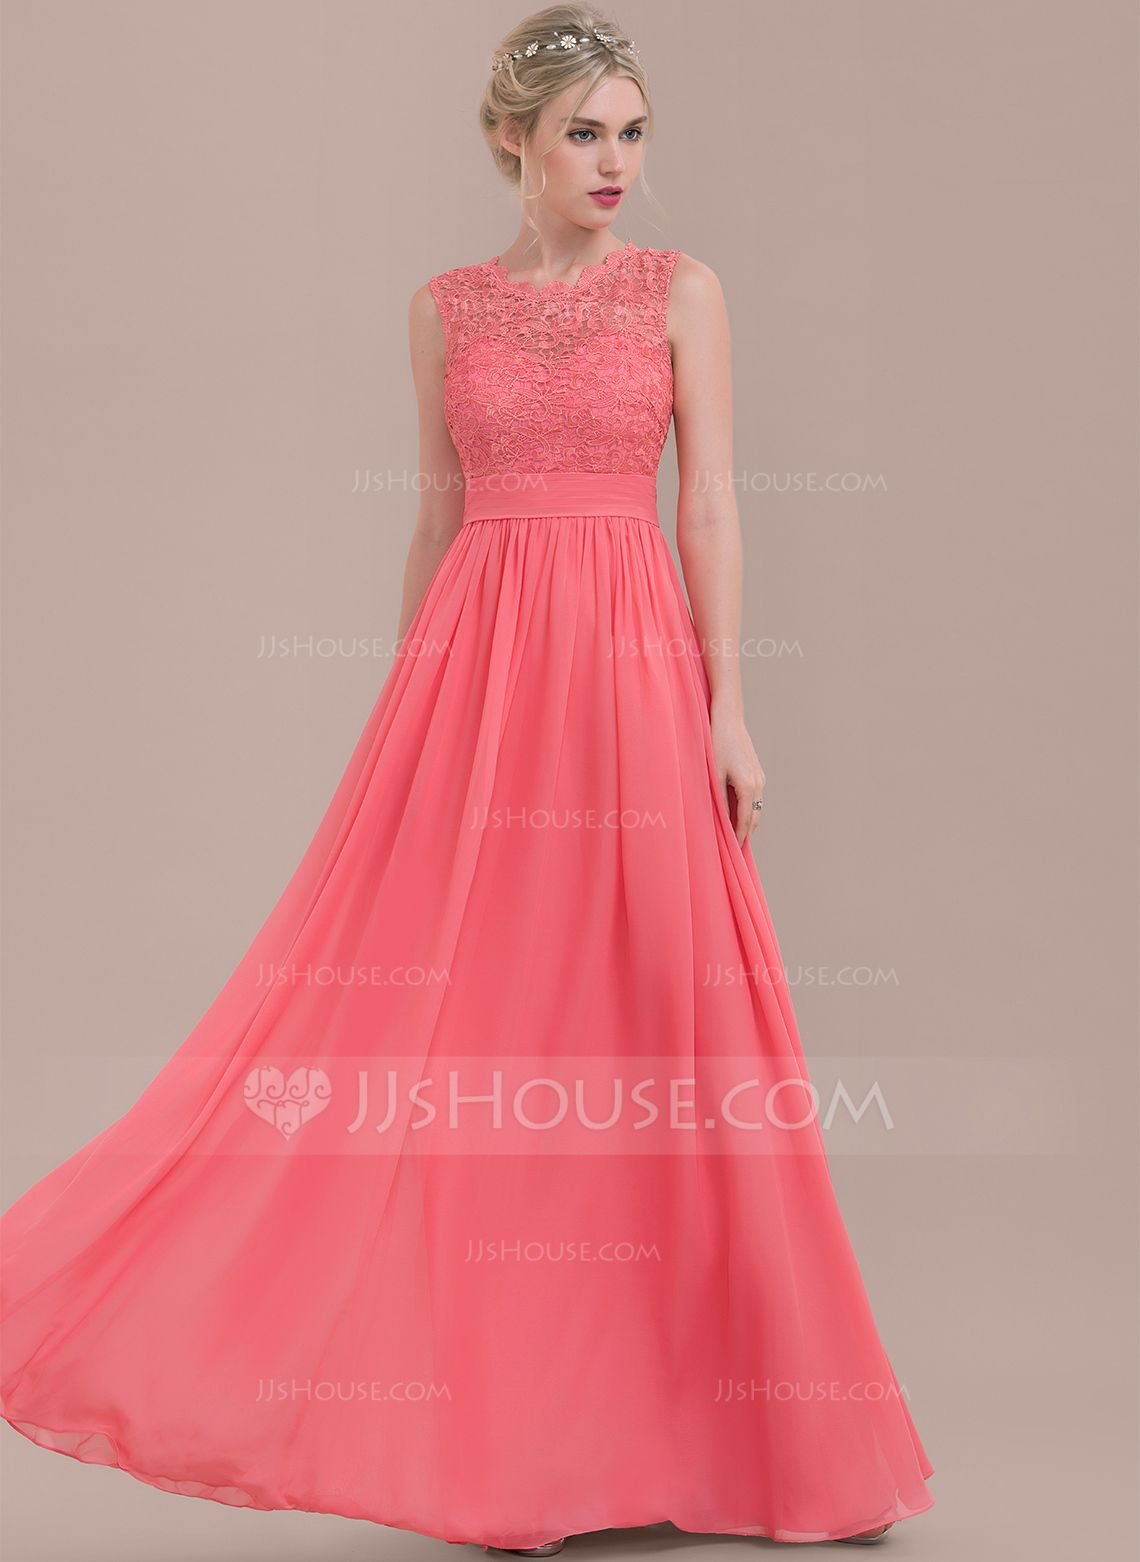 Dress for A Wedding Party - Dress for Country Wedding Guest Check ...